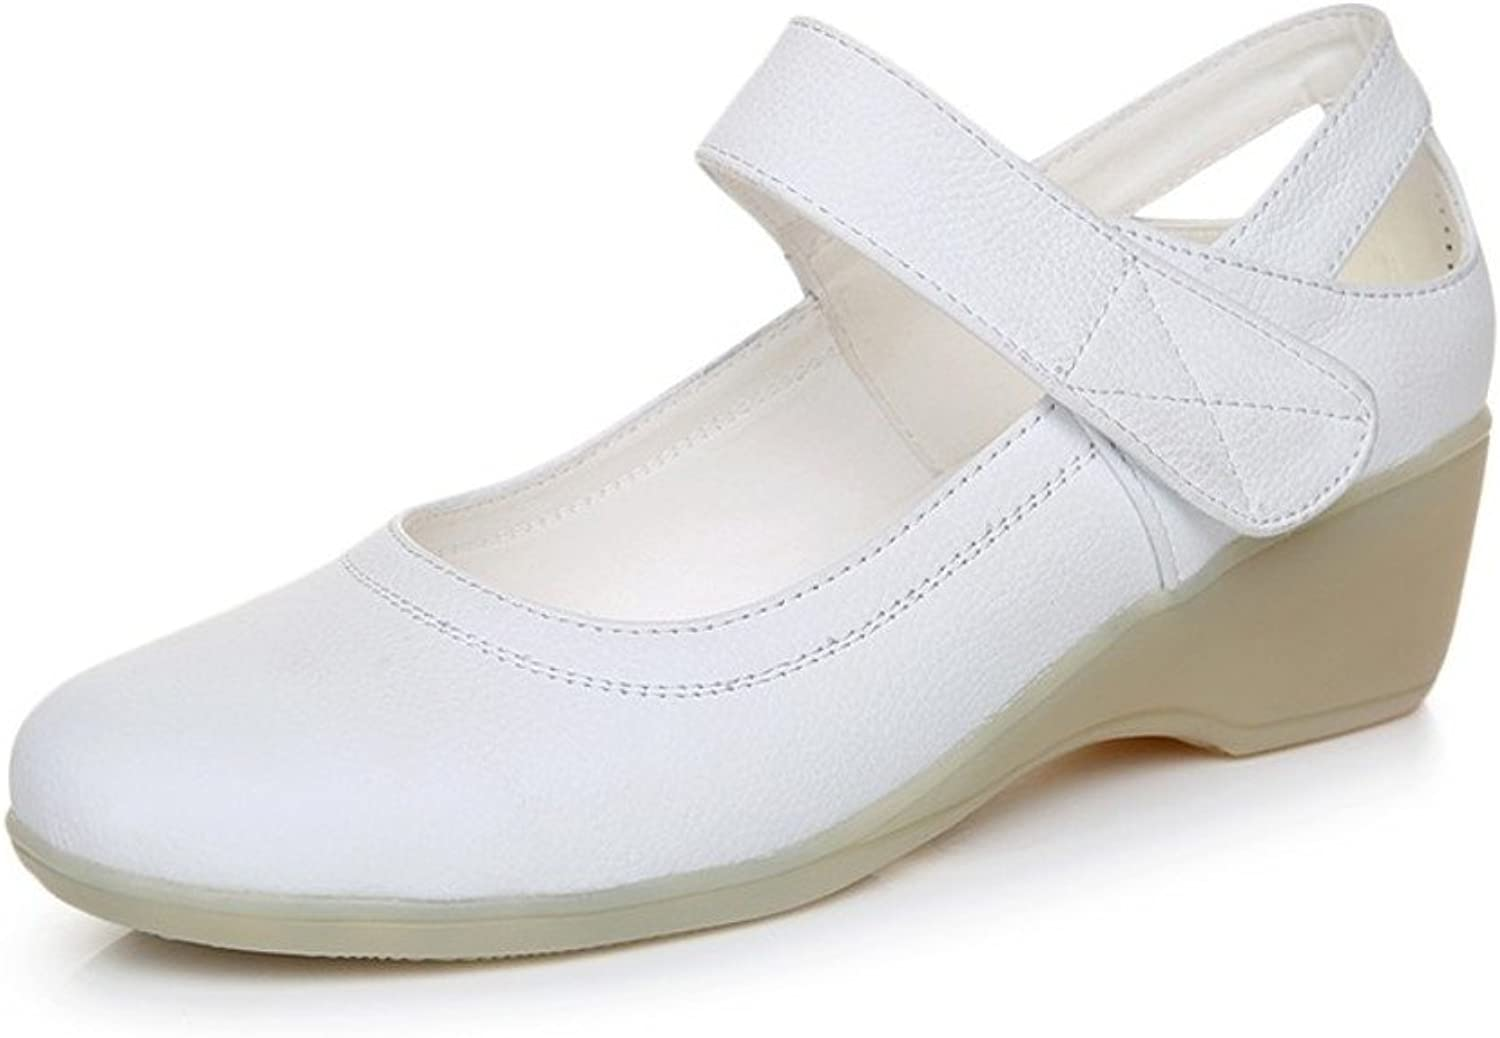 MET RXL Ladies Leather shoes Wedges Casual shoes Comfortable Commute to Work shoes